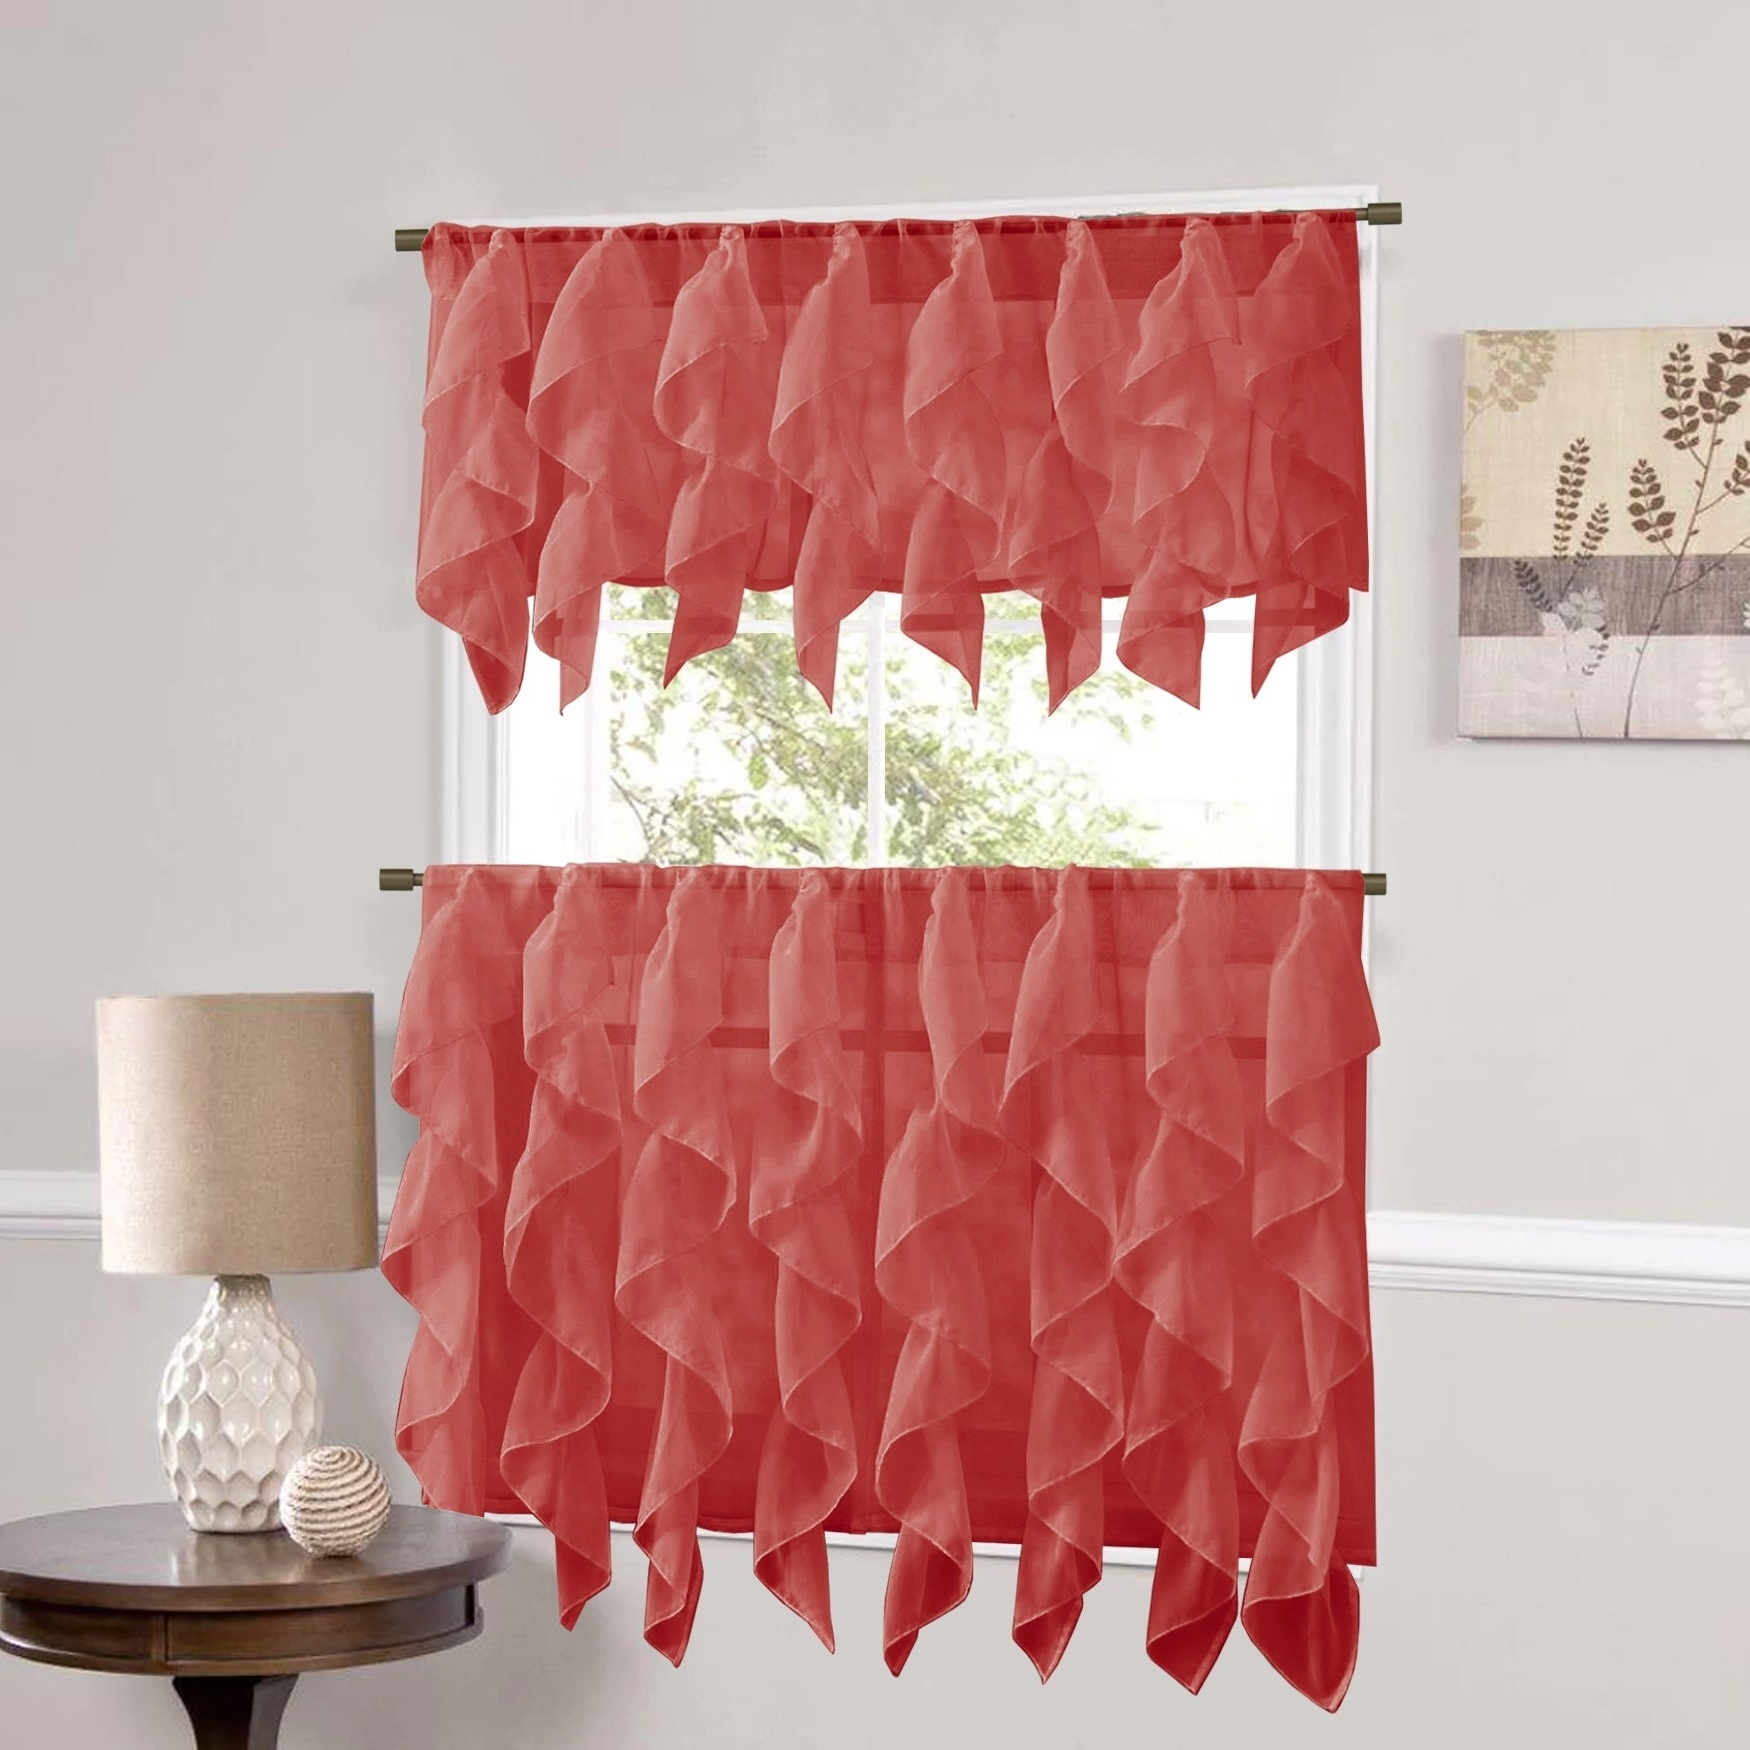 Famous Vertical Ruffled Waterfall Valances And Curtain Tiers Pertaining To Sweet Home Collection Burgundy Vertical Ruffled Waterfall Valance And Curtain Tiers (View 4 of 20)